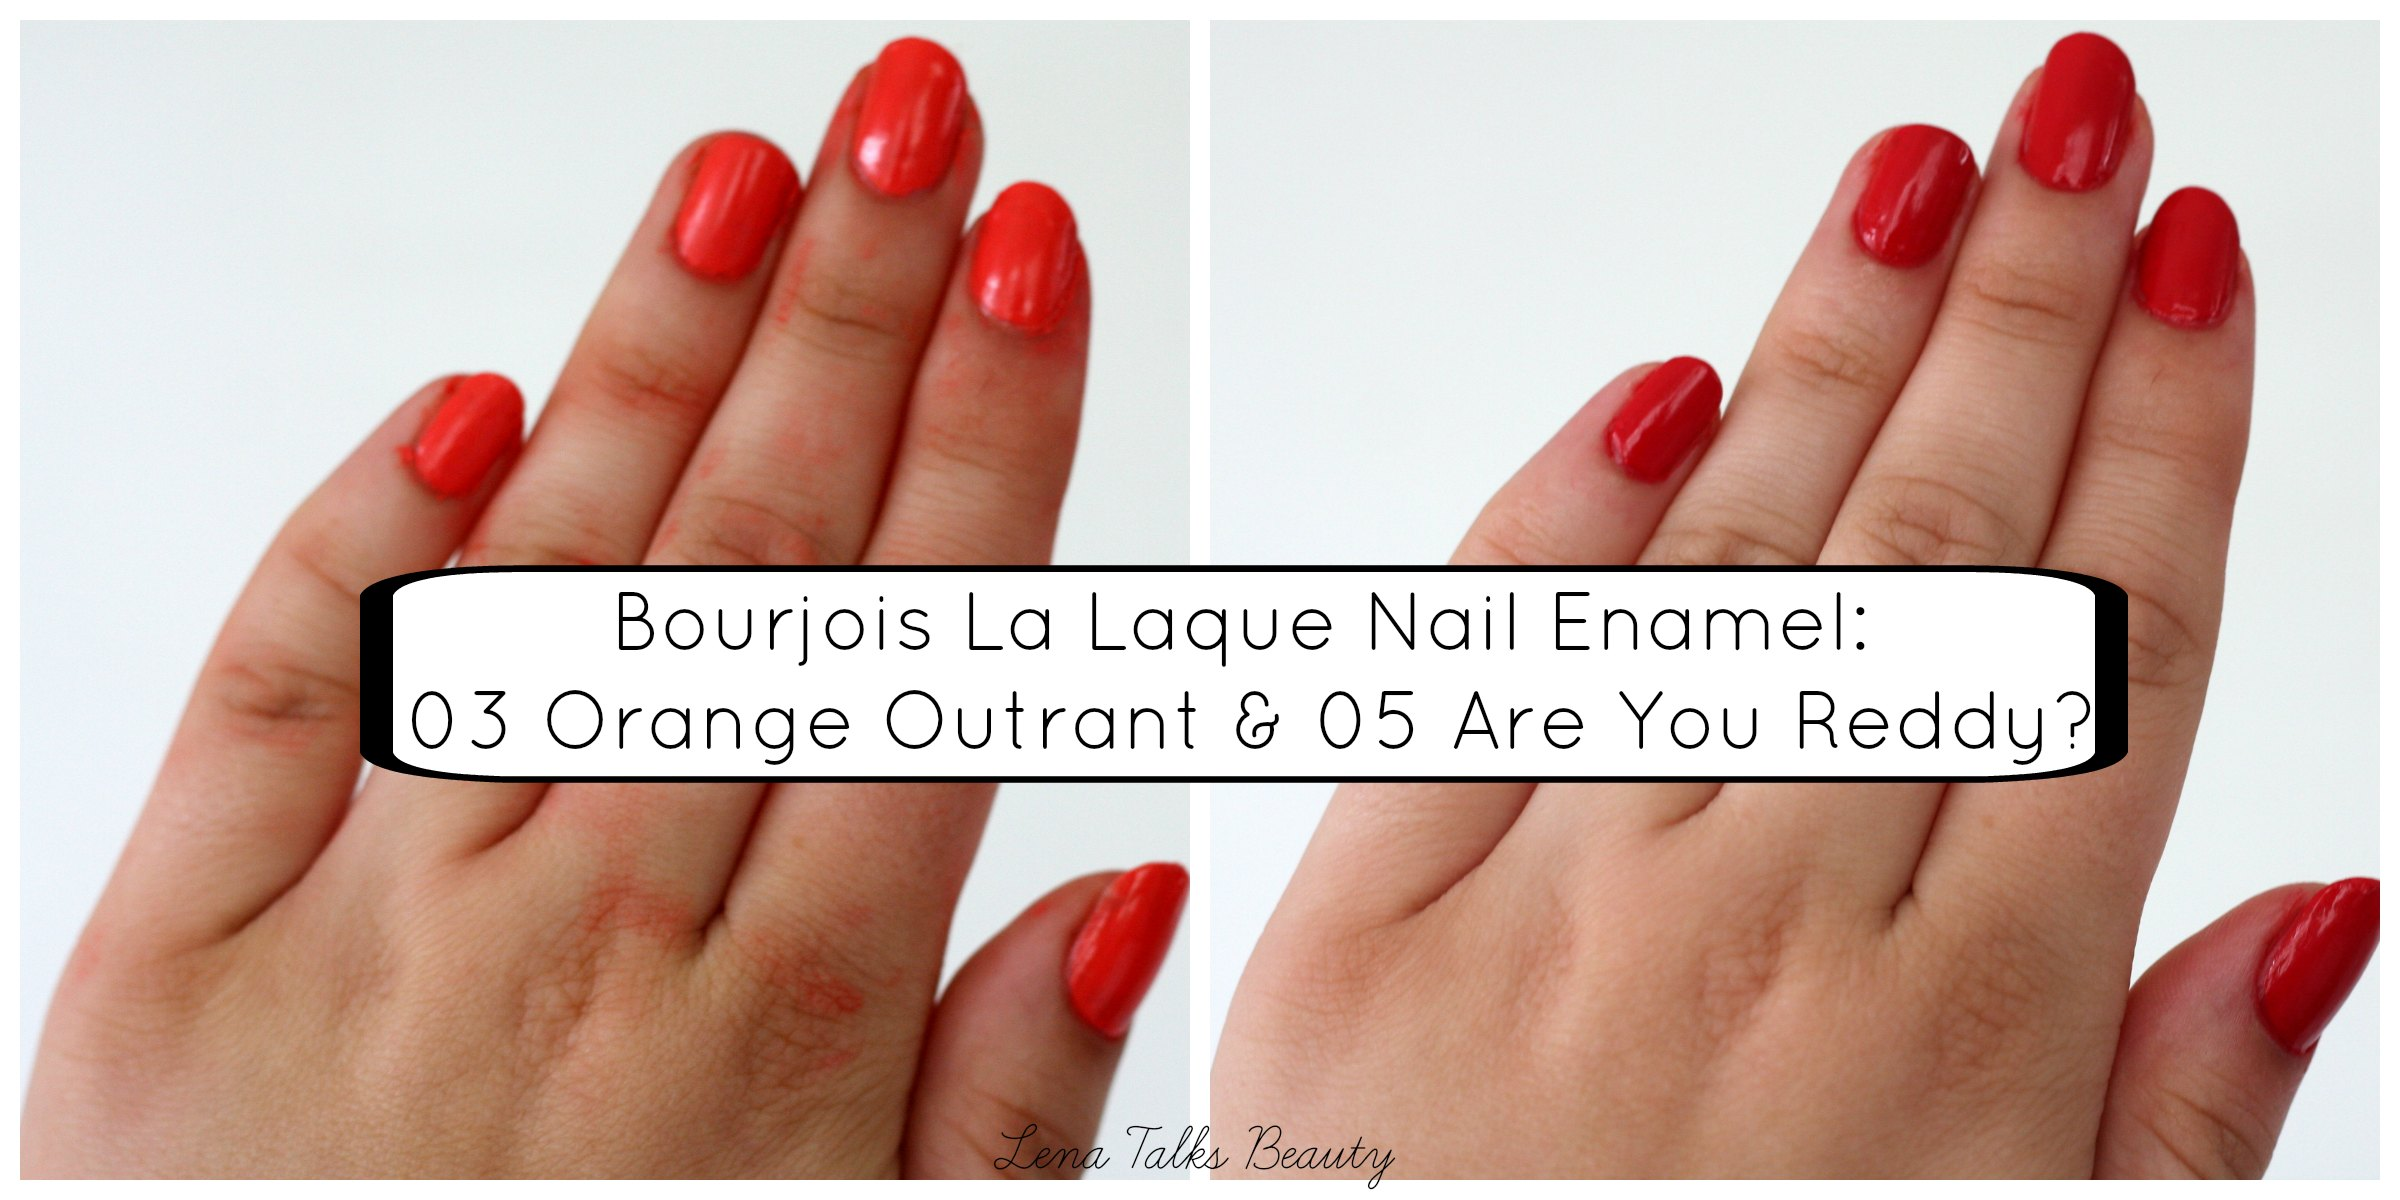 Bourjois la laque nail enamel 03 orange outrant and 05 are you reddy